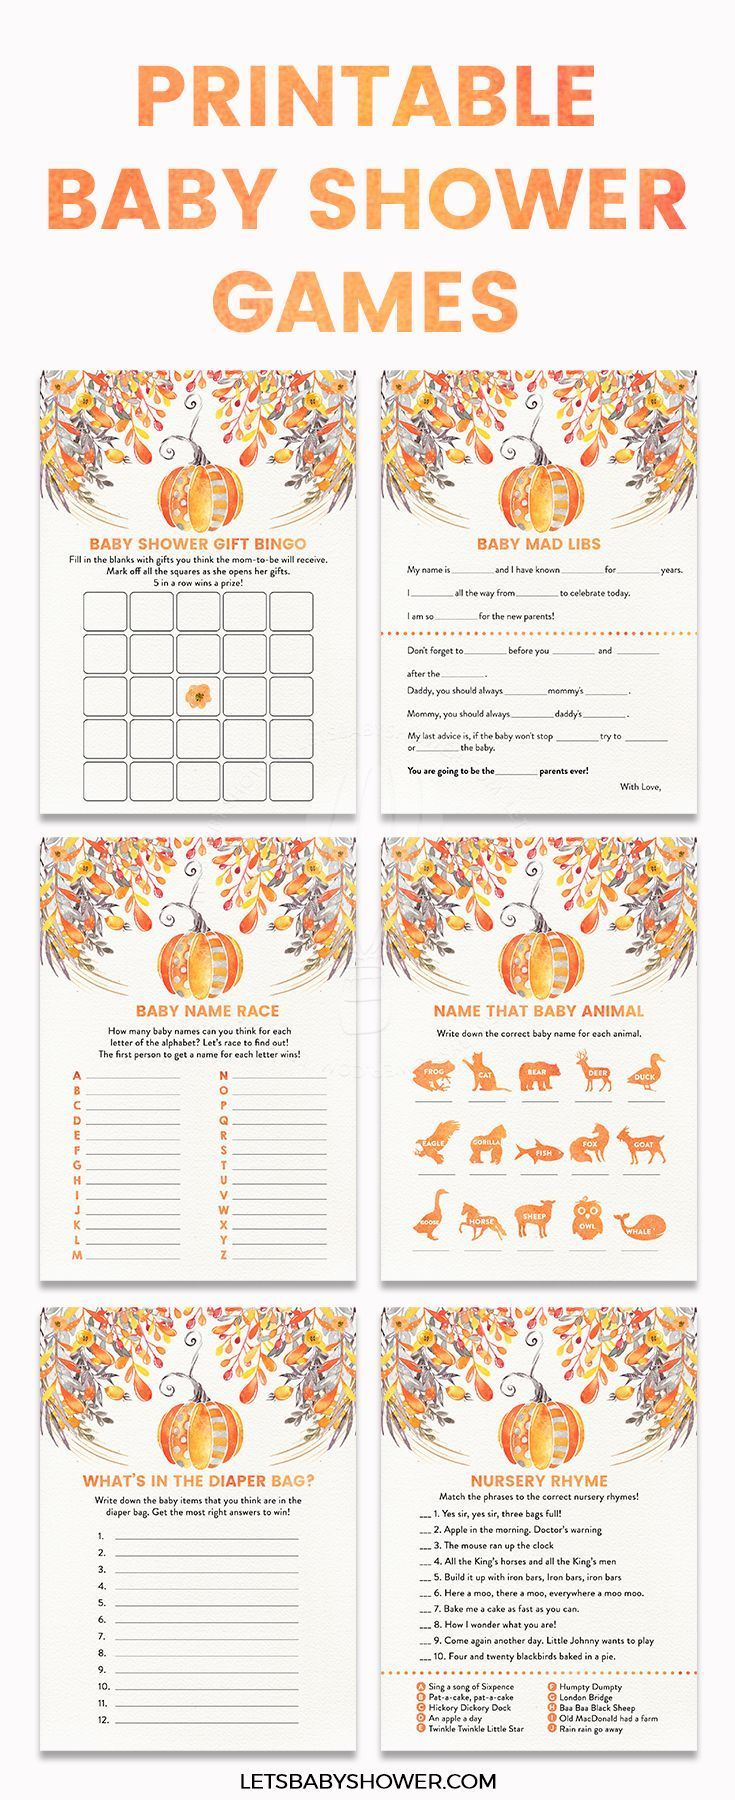 Printable Baby Shower: Fall Autumn Orange Pumpkin Baby Shower Idea for Boy or Girl